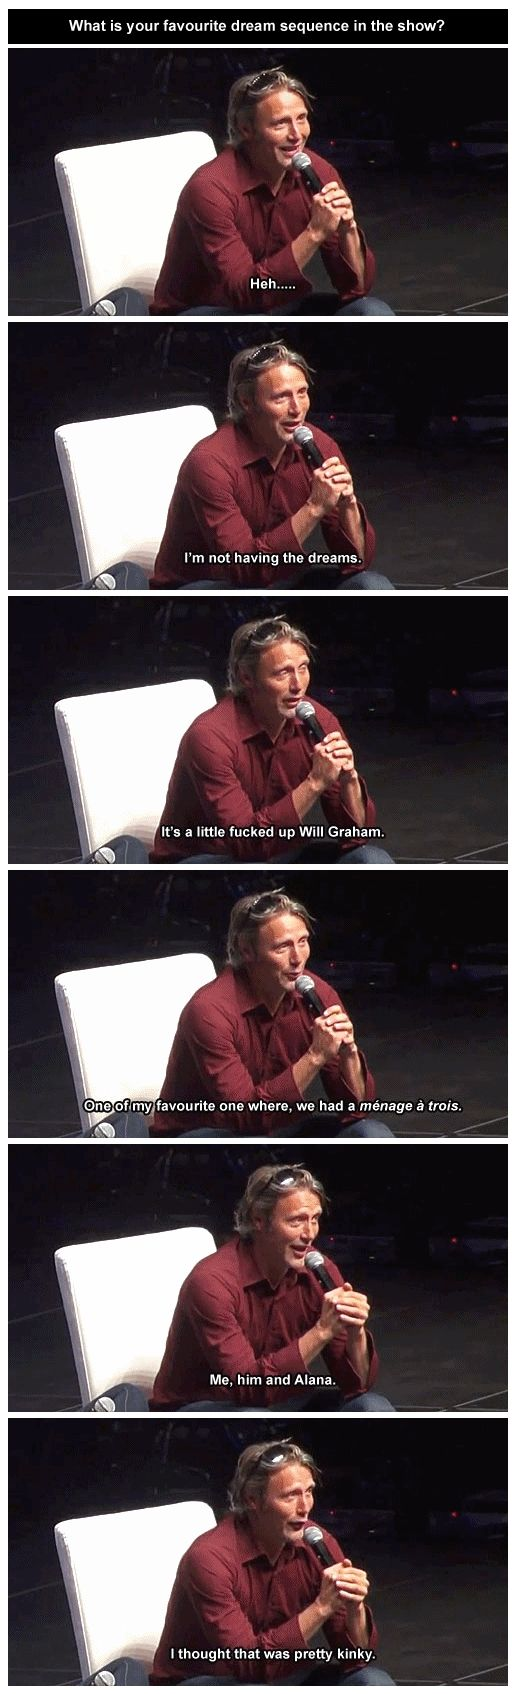 OMG Mads why are you so cute? I so wanna find the video of this interview.